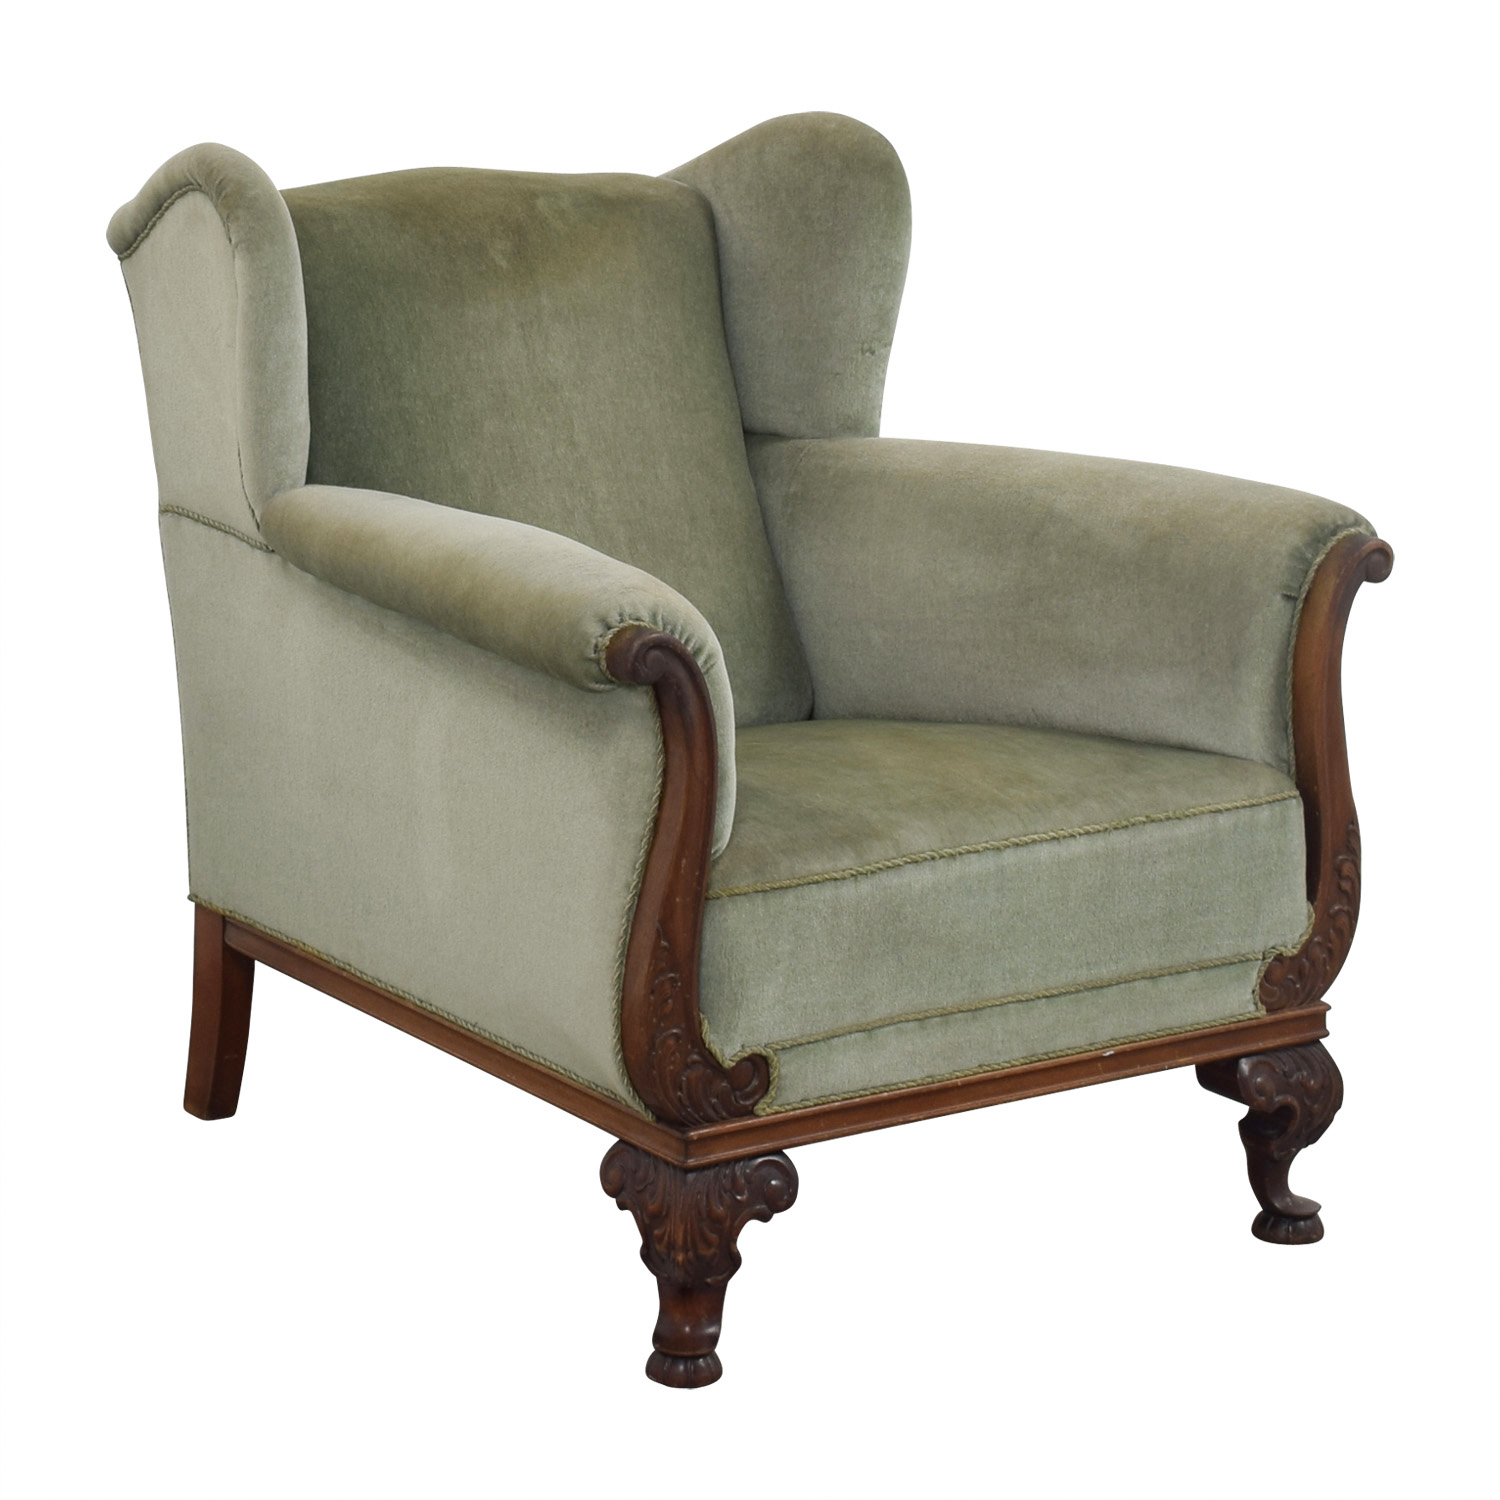 90 off scandanavian green club chair chairs for Furniture 90 off